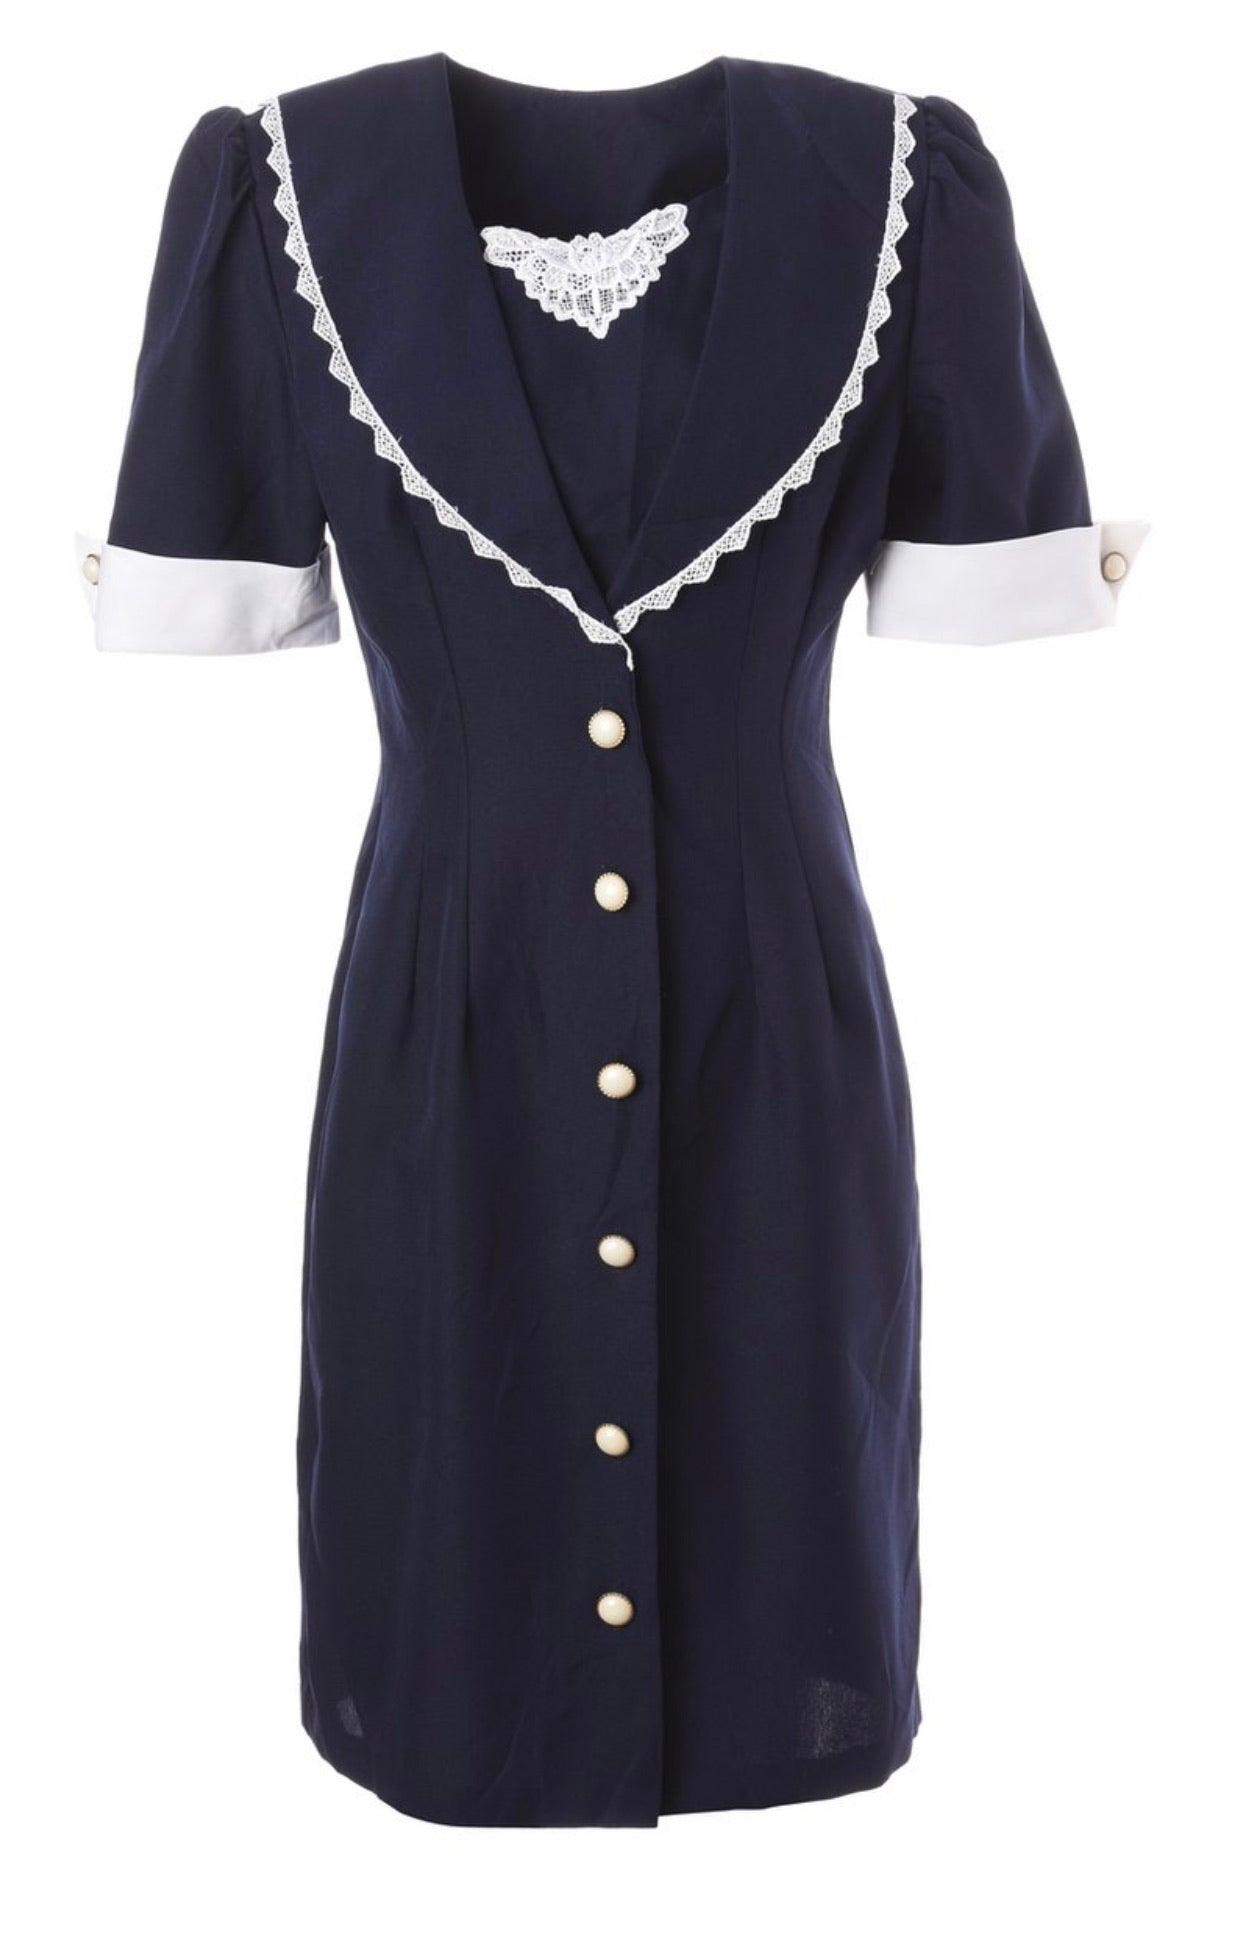 The Blair Sailor Dress